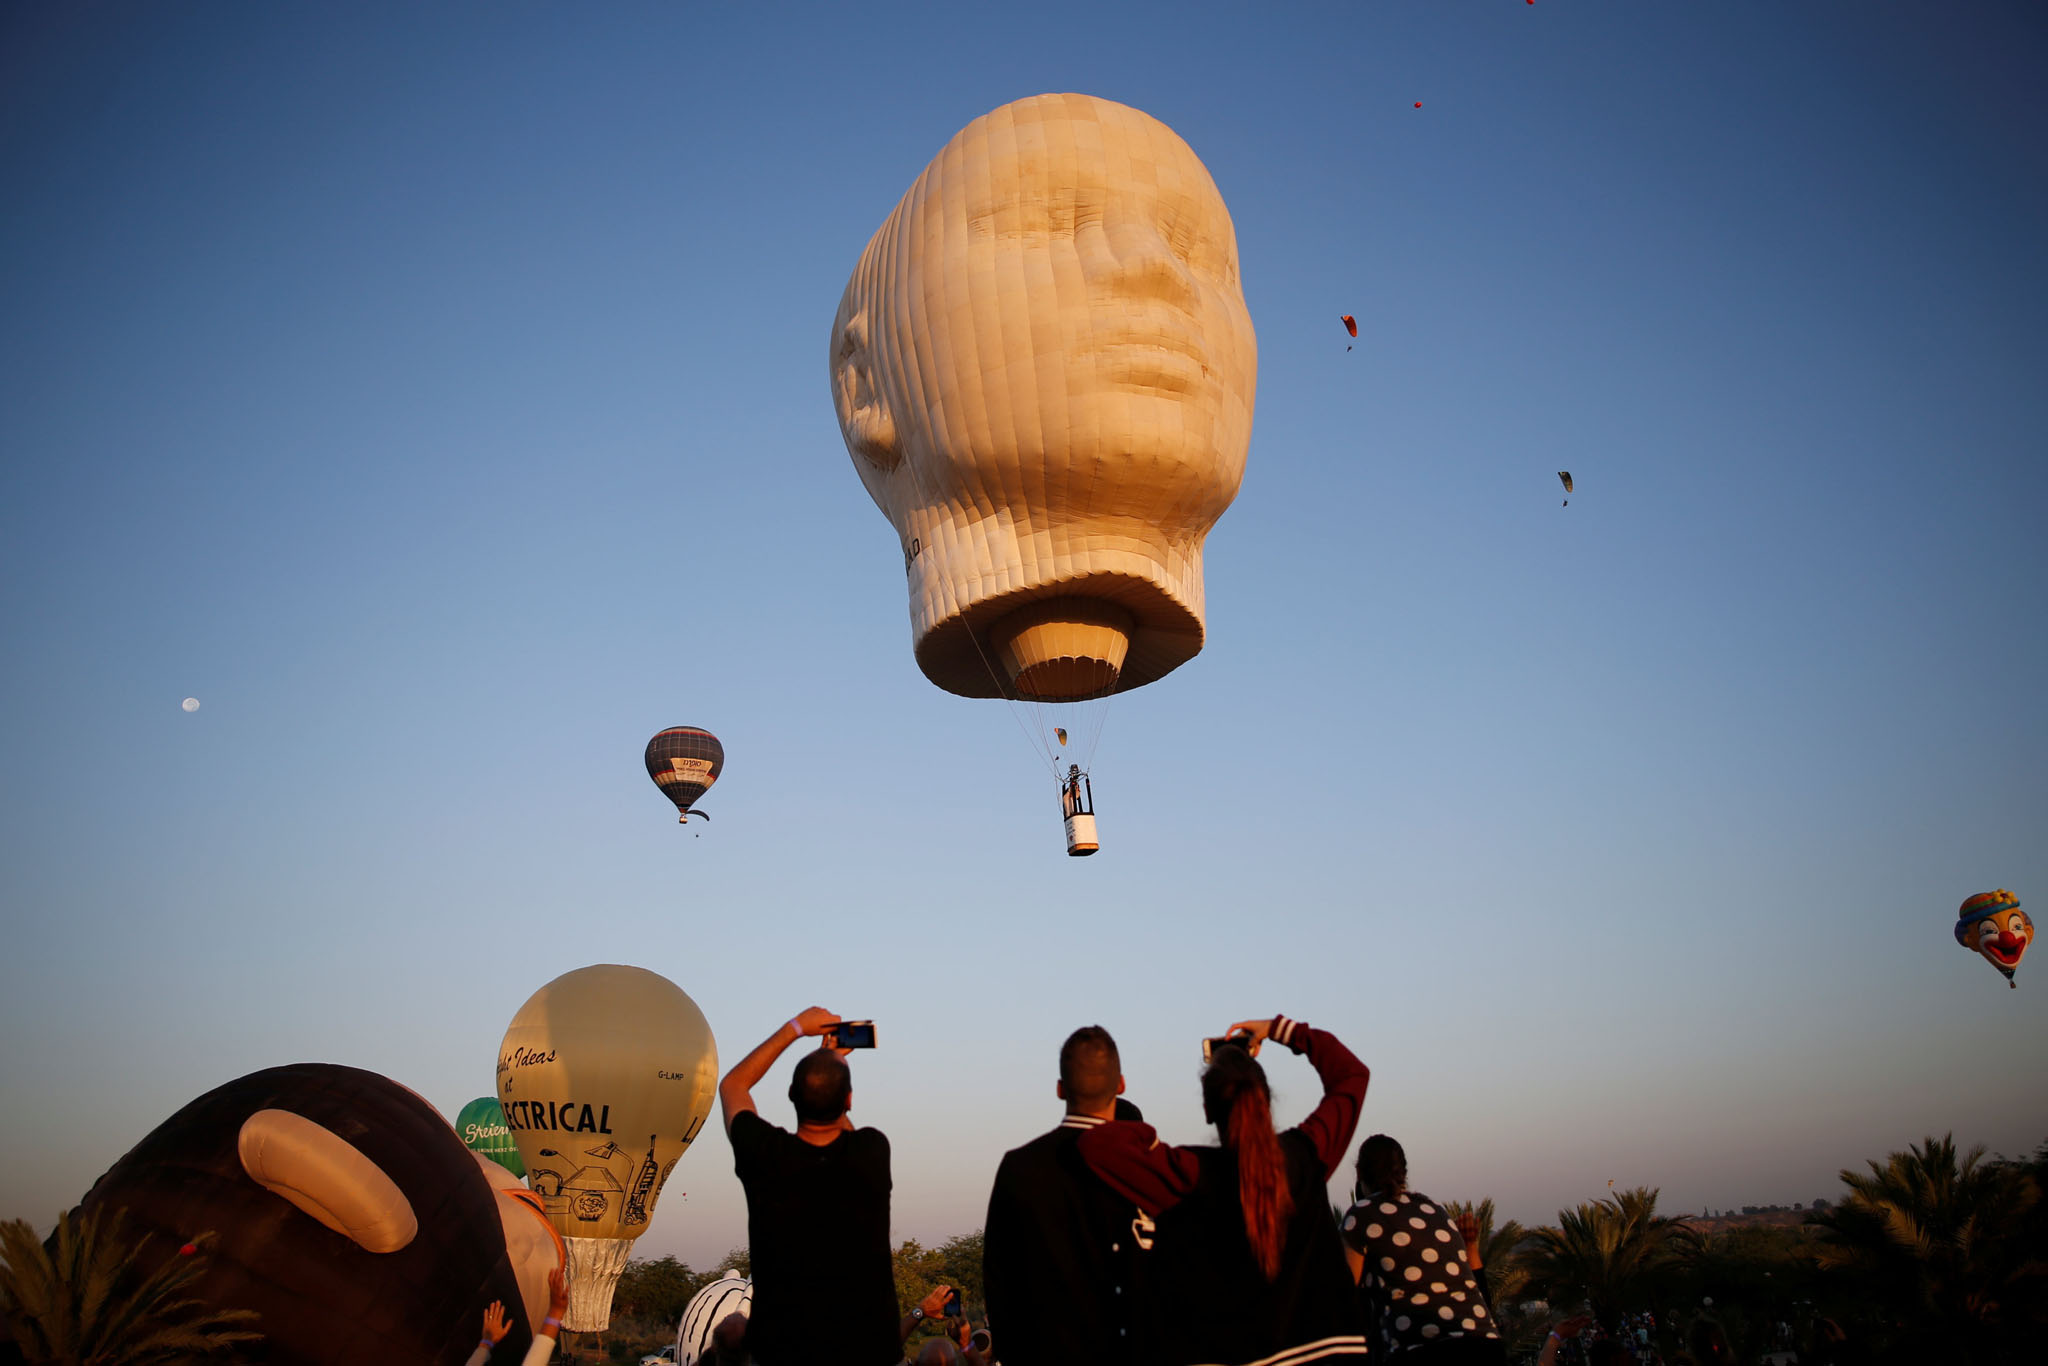 People are seen watching hot air balloons fly overhead during a two-day international hot air balloon festival in Eshkol Park near the southern city of Netivot, Israel